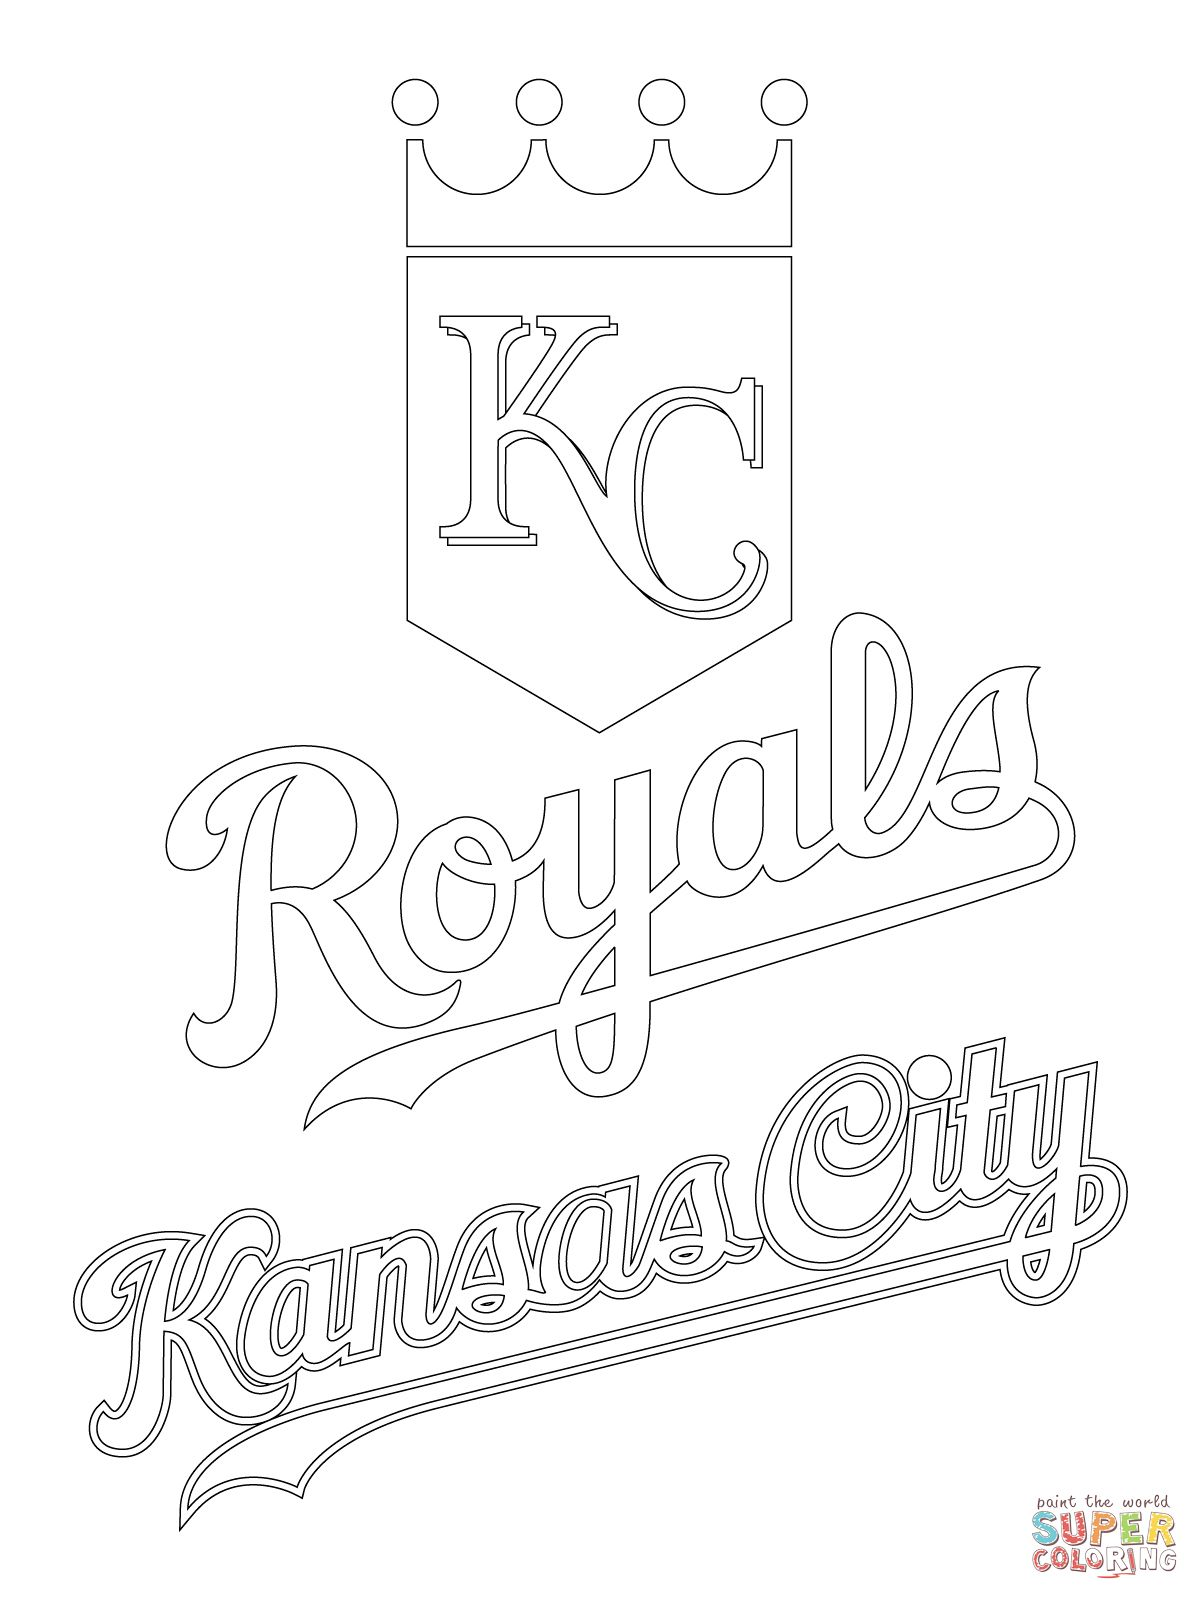 Kansas City Royals Logo | Super Coloring | DIY | Pinterest | Royal ...